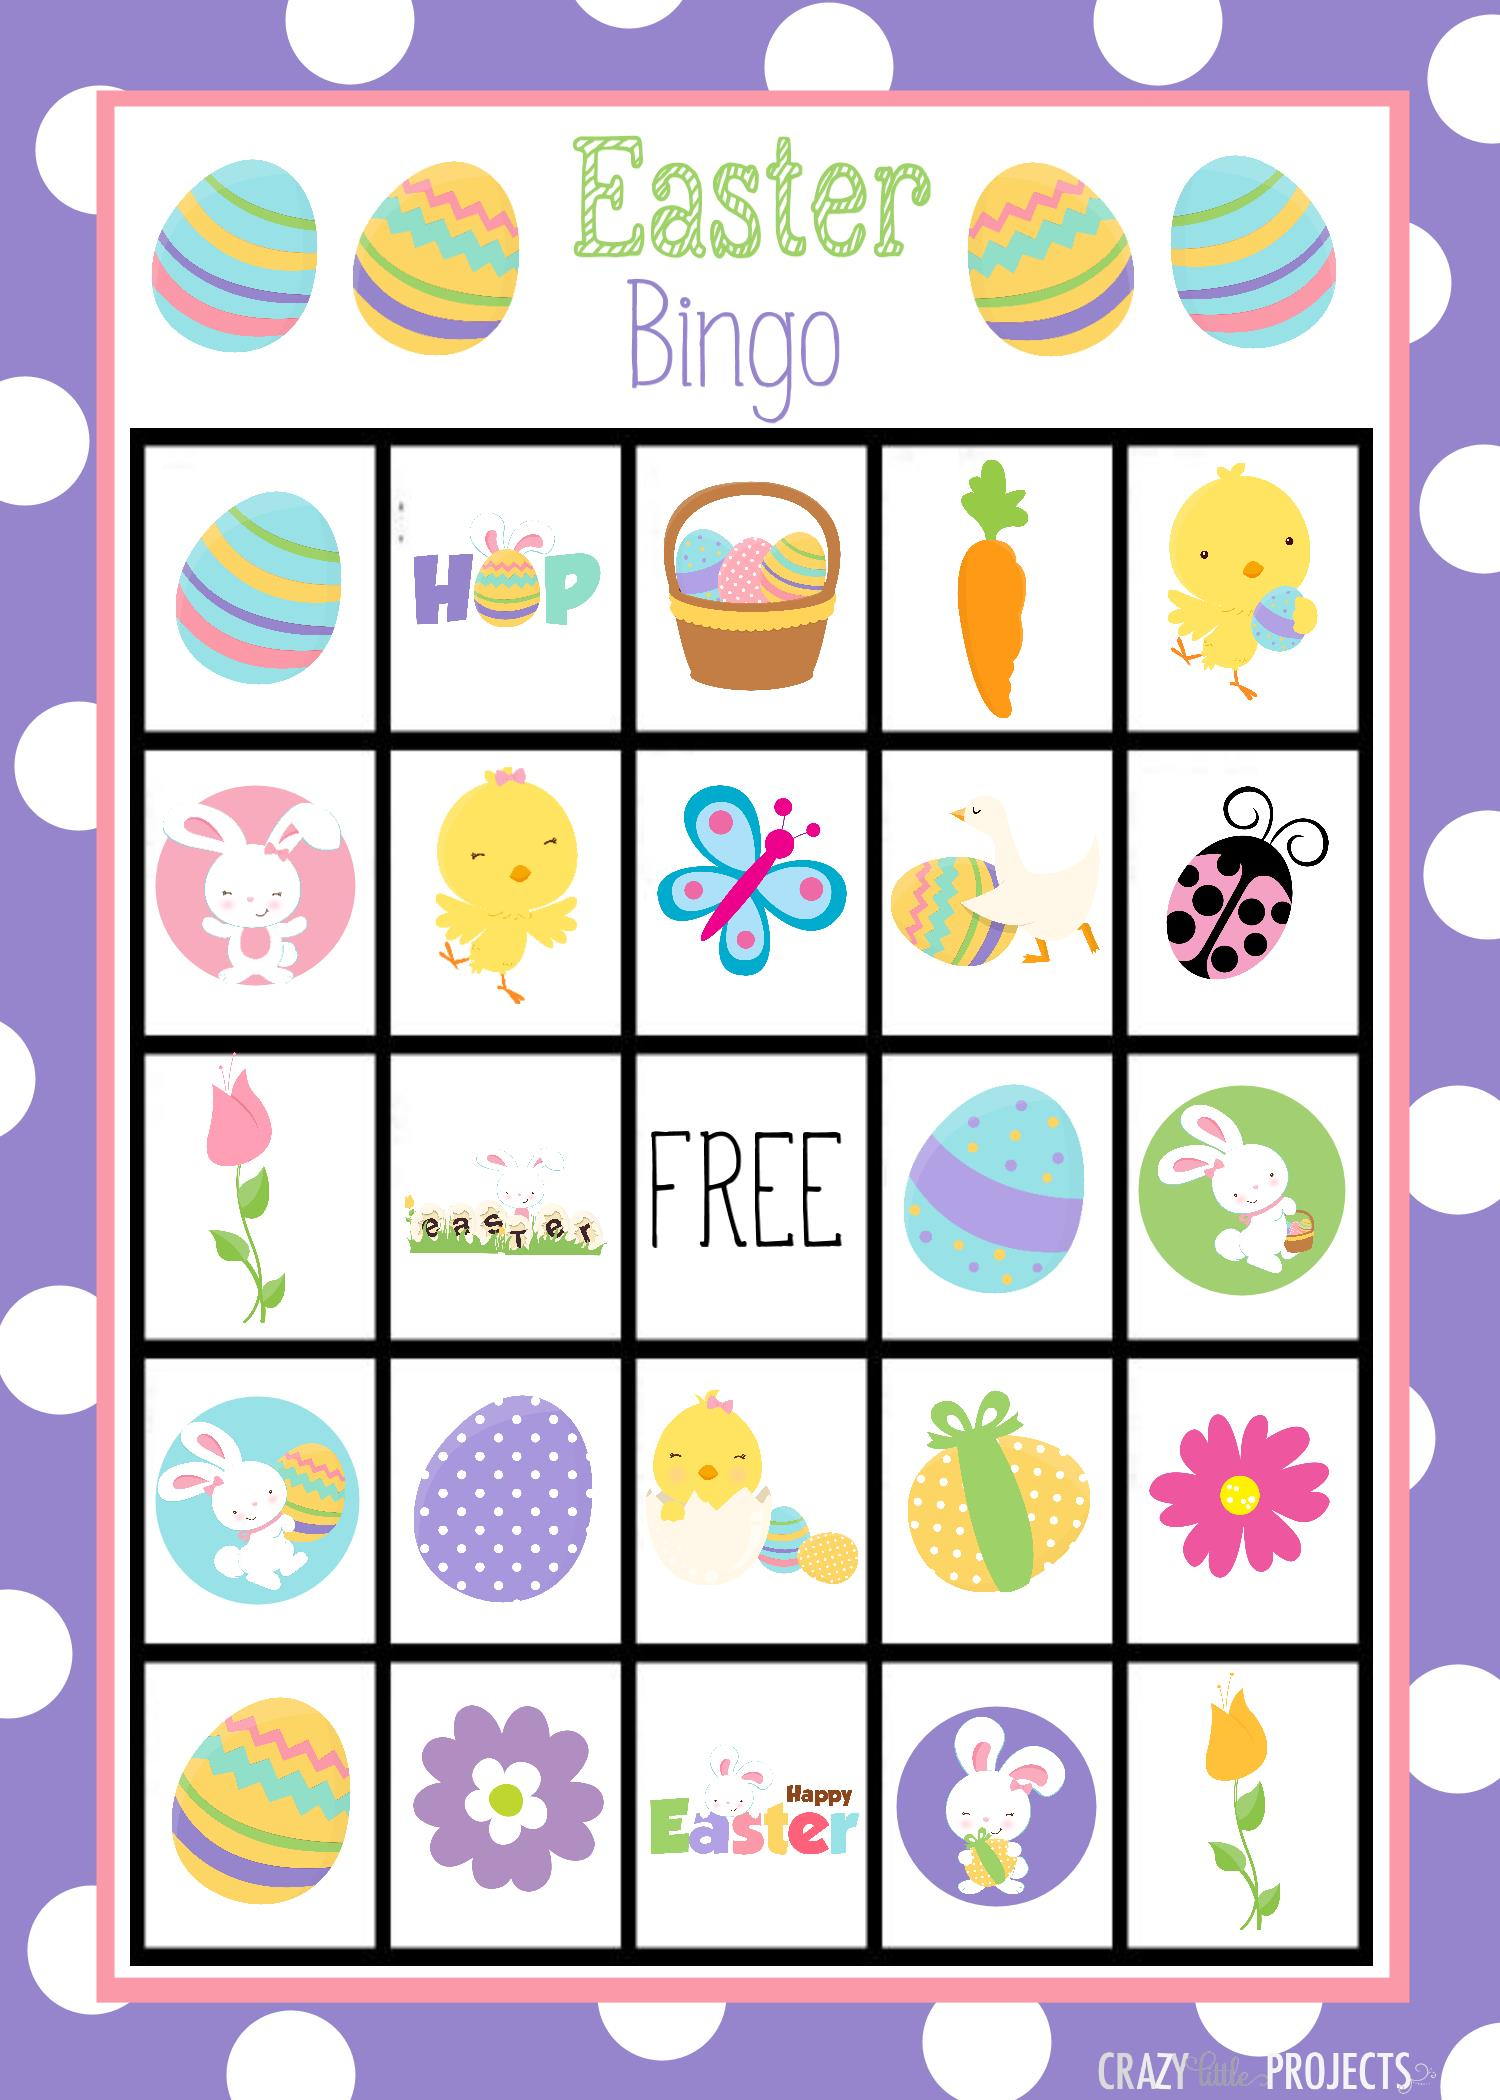 Easter Games For Adults Printable Free – Hd Easter Images - Easter Games For Adults Printable Free